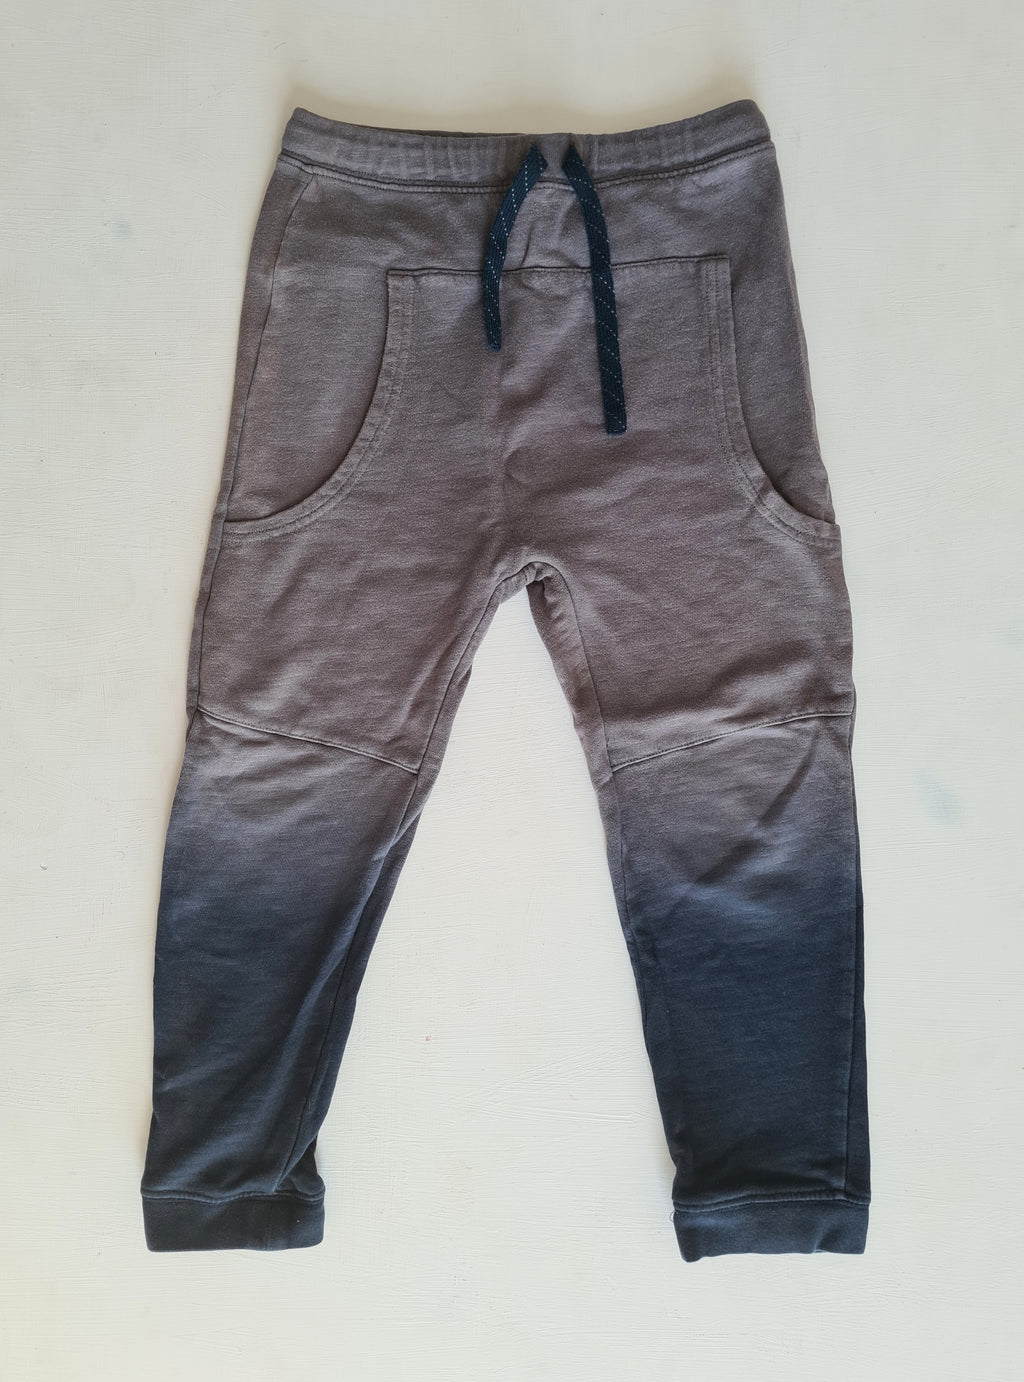 THRIFT Fred Bare - Grey and Blue trackpants Size 6